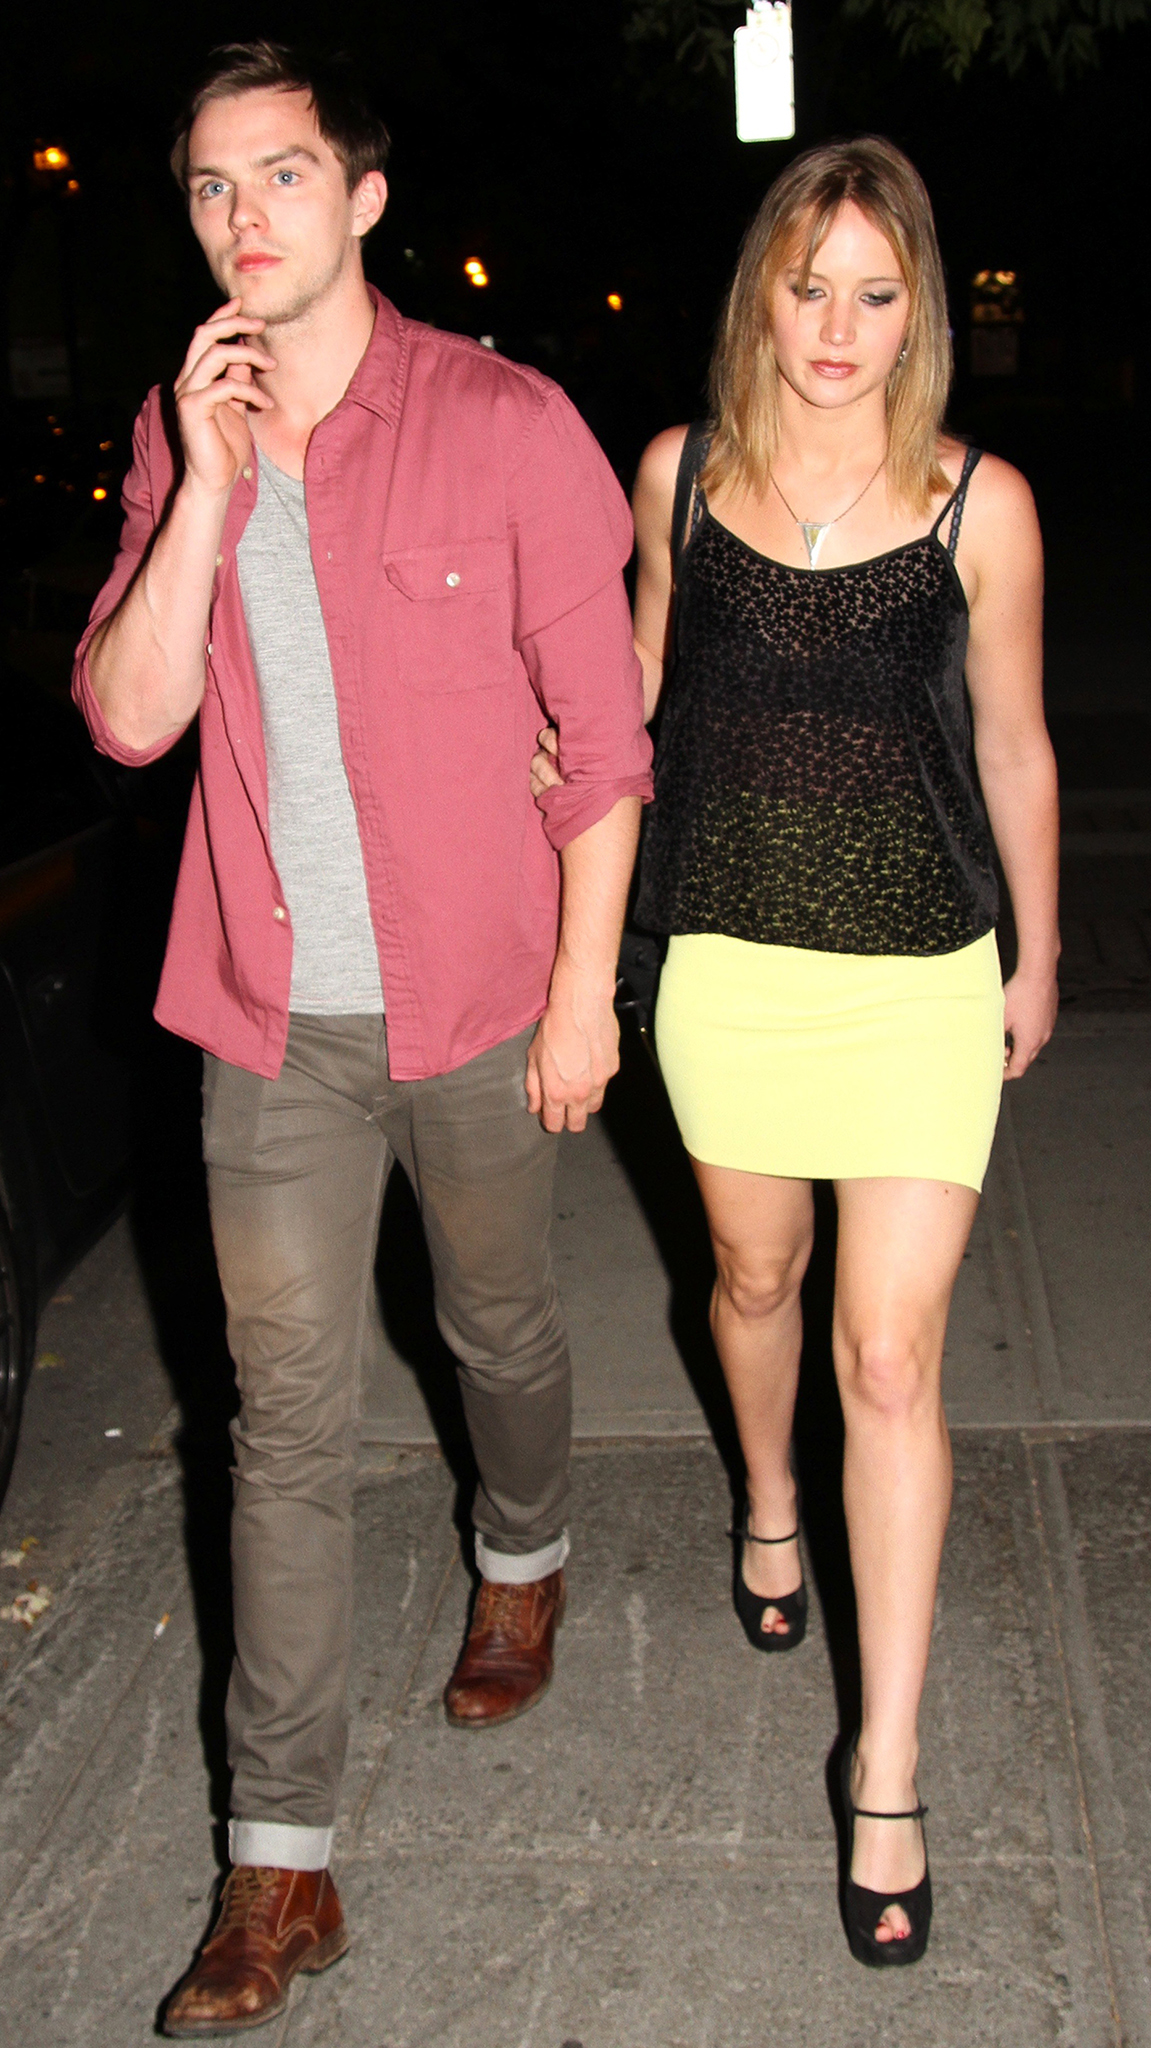 Nicholas Hoult and Jennifer Lawrence on Saturday night. (Splash News)